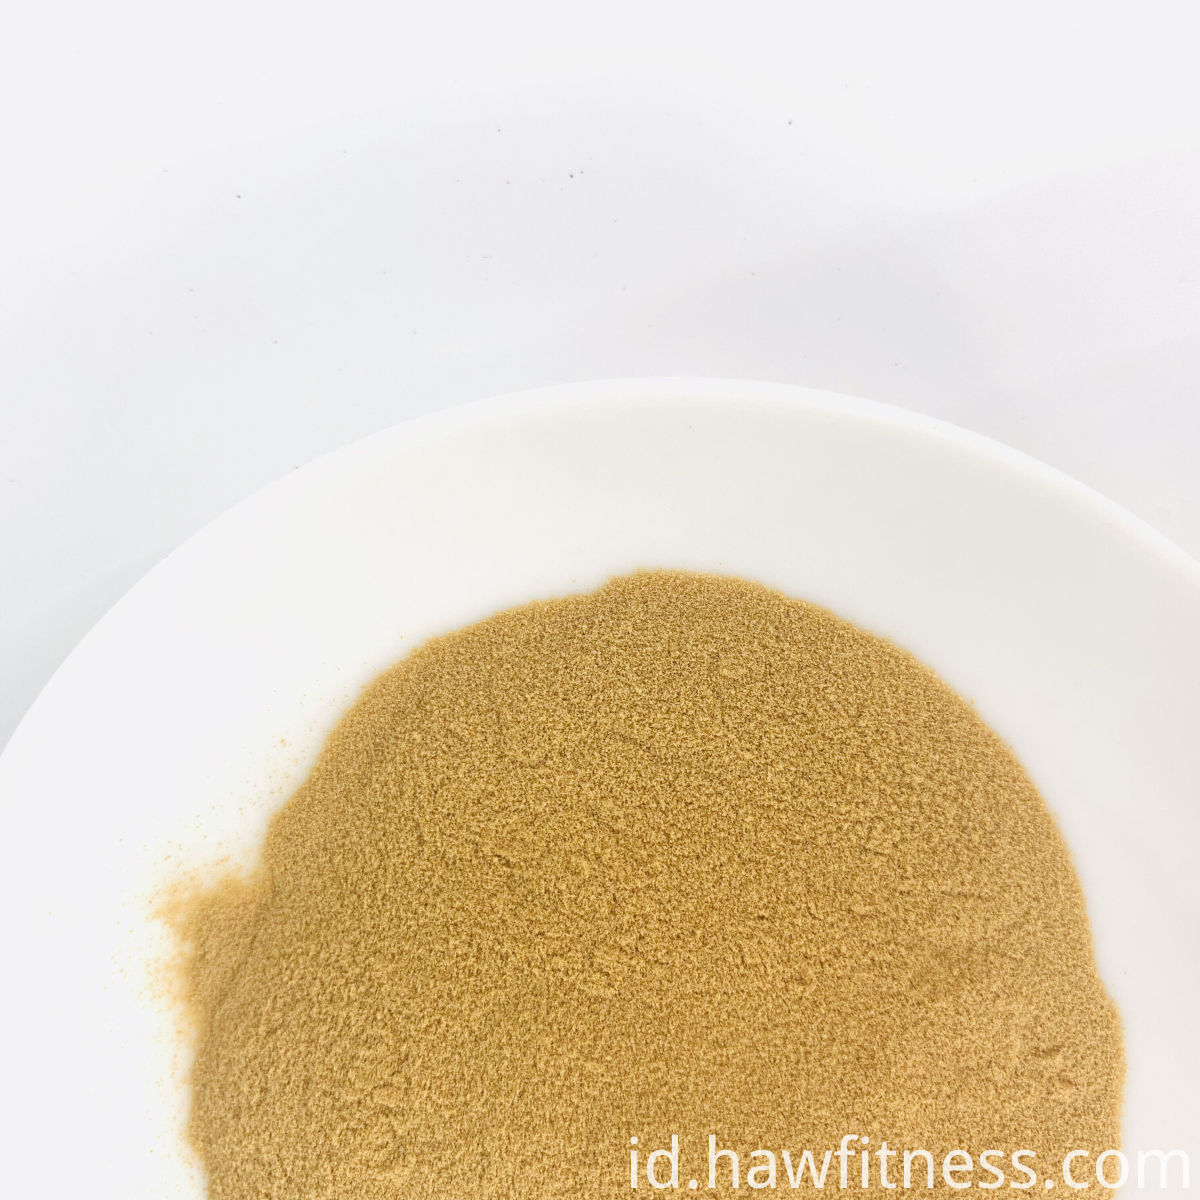 5:1 Chrysanthemum Extract